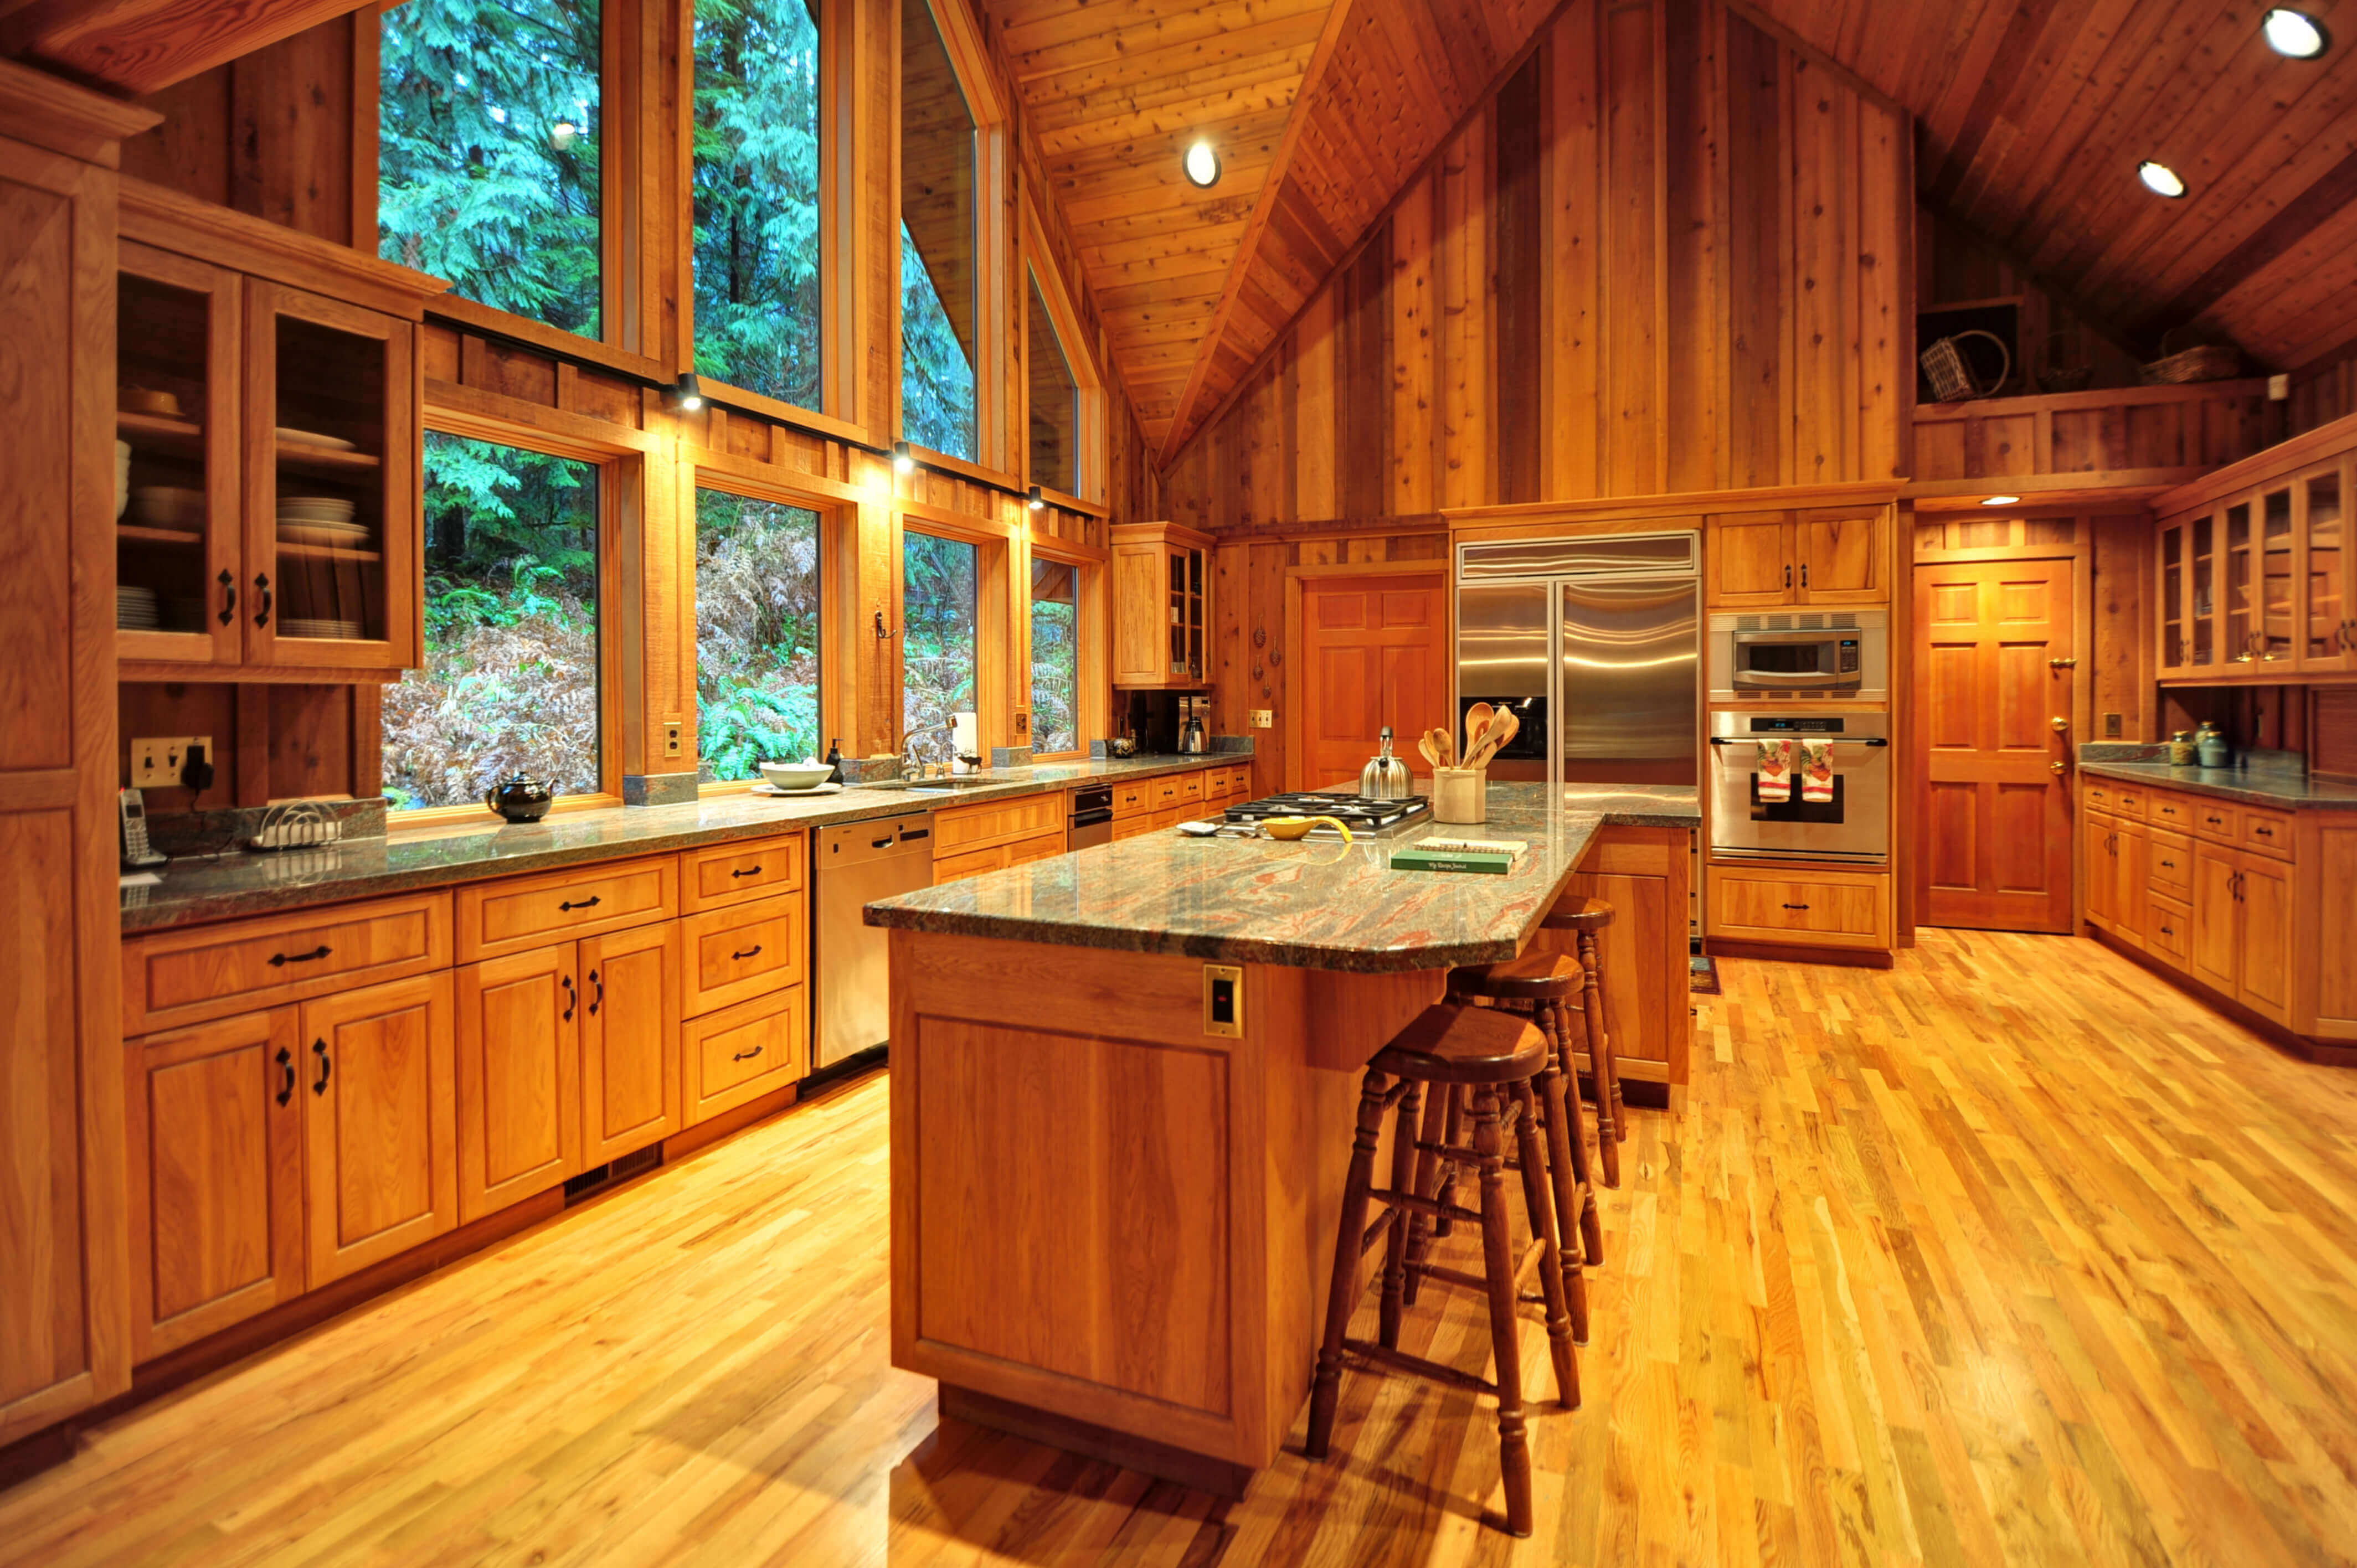 68Deluxe Custom Kitchen Island Ideas Jaw Dropping Designs